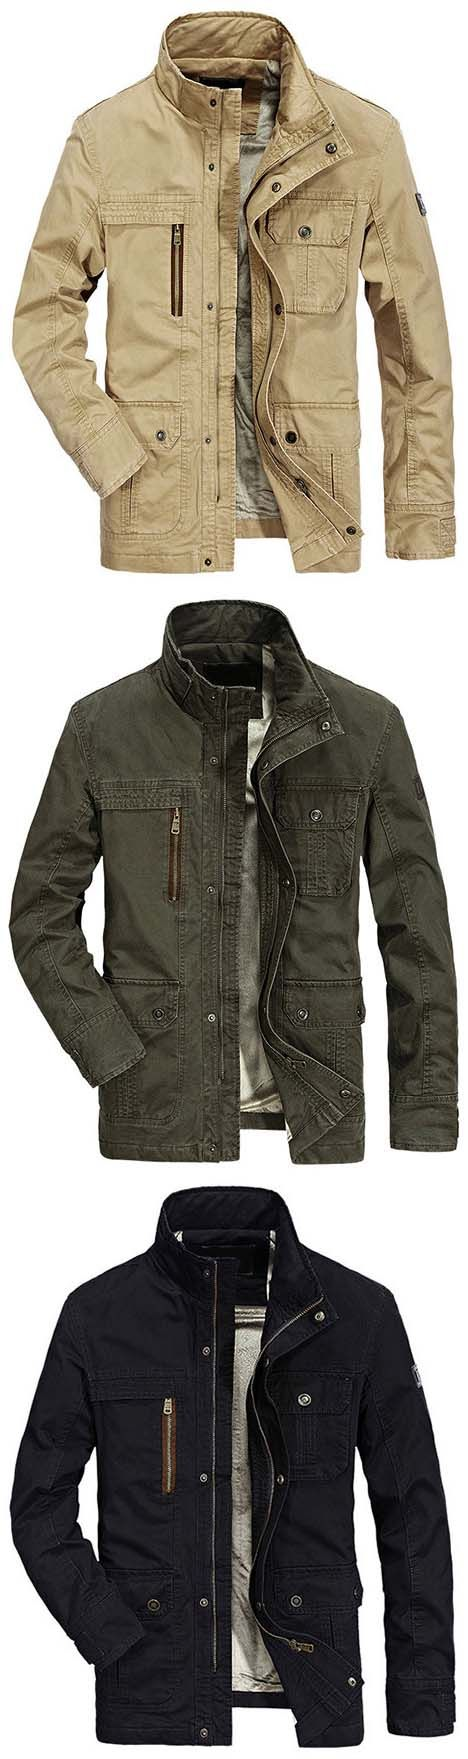 Mens Jacket:AFSJEEP Military Pure Cotton Mutil Pocket Velvet Coat Jacket for Men